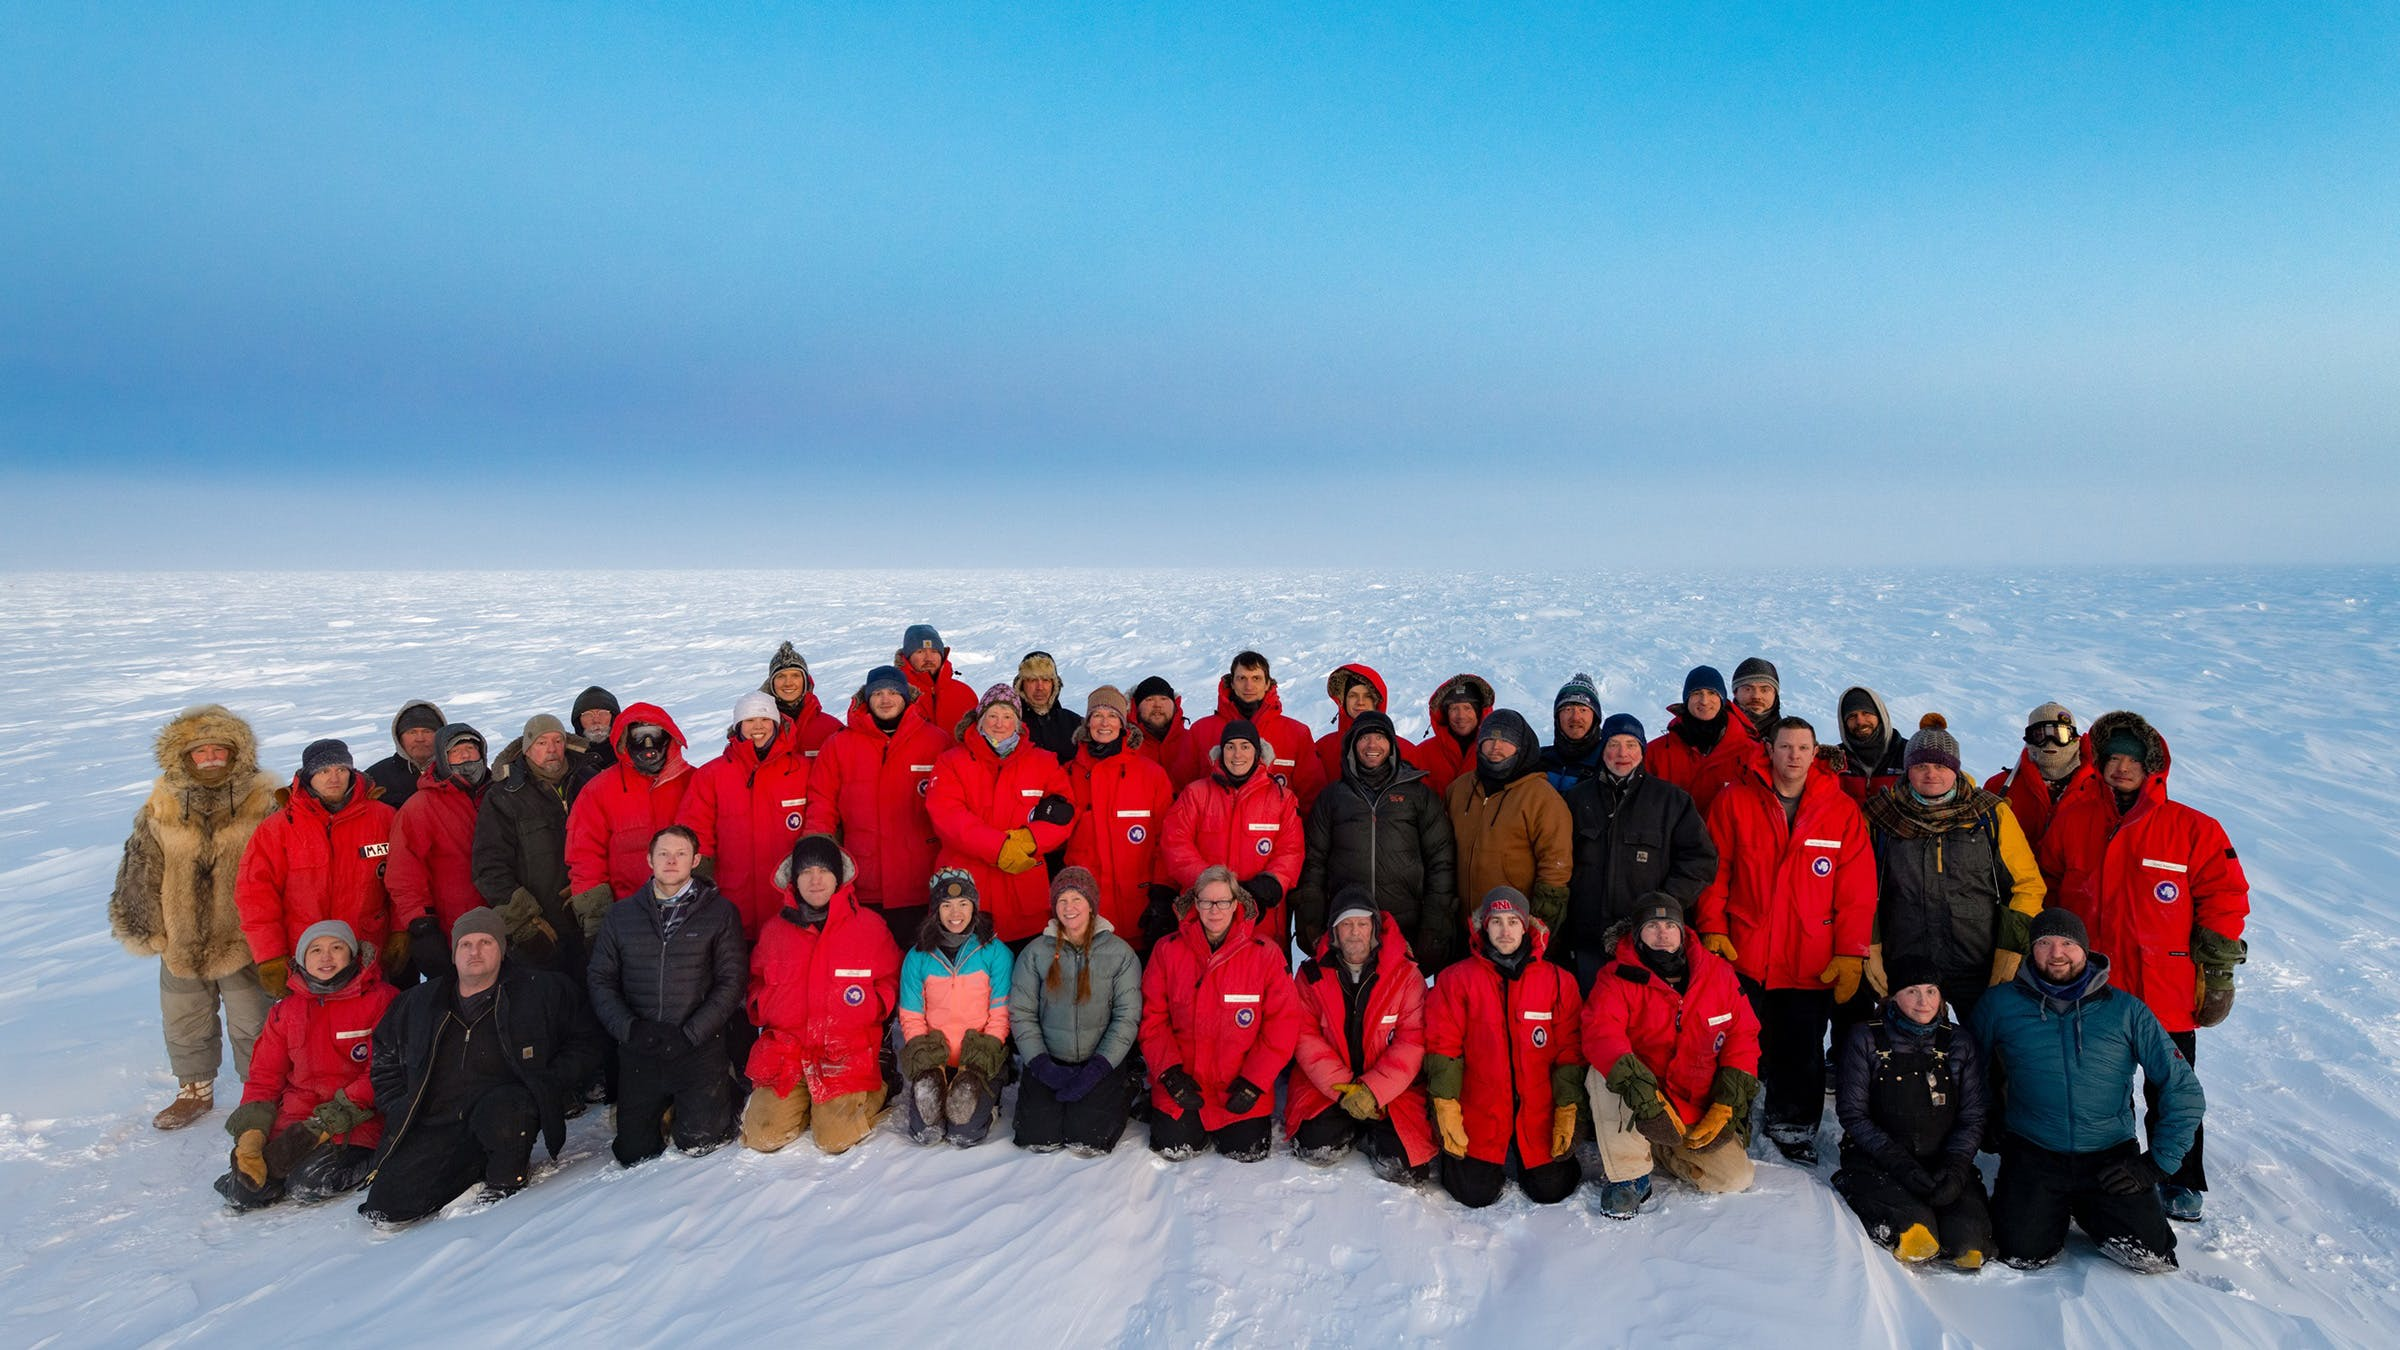 White (far left) dons his wolf furs in the official photo of the South Pole 2020 winter crew from September 2020. This photo will hang on the wall at the South Pole research station as long as the US has a presence there.